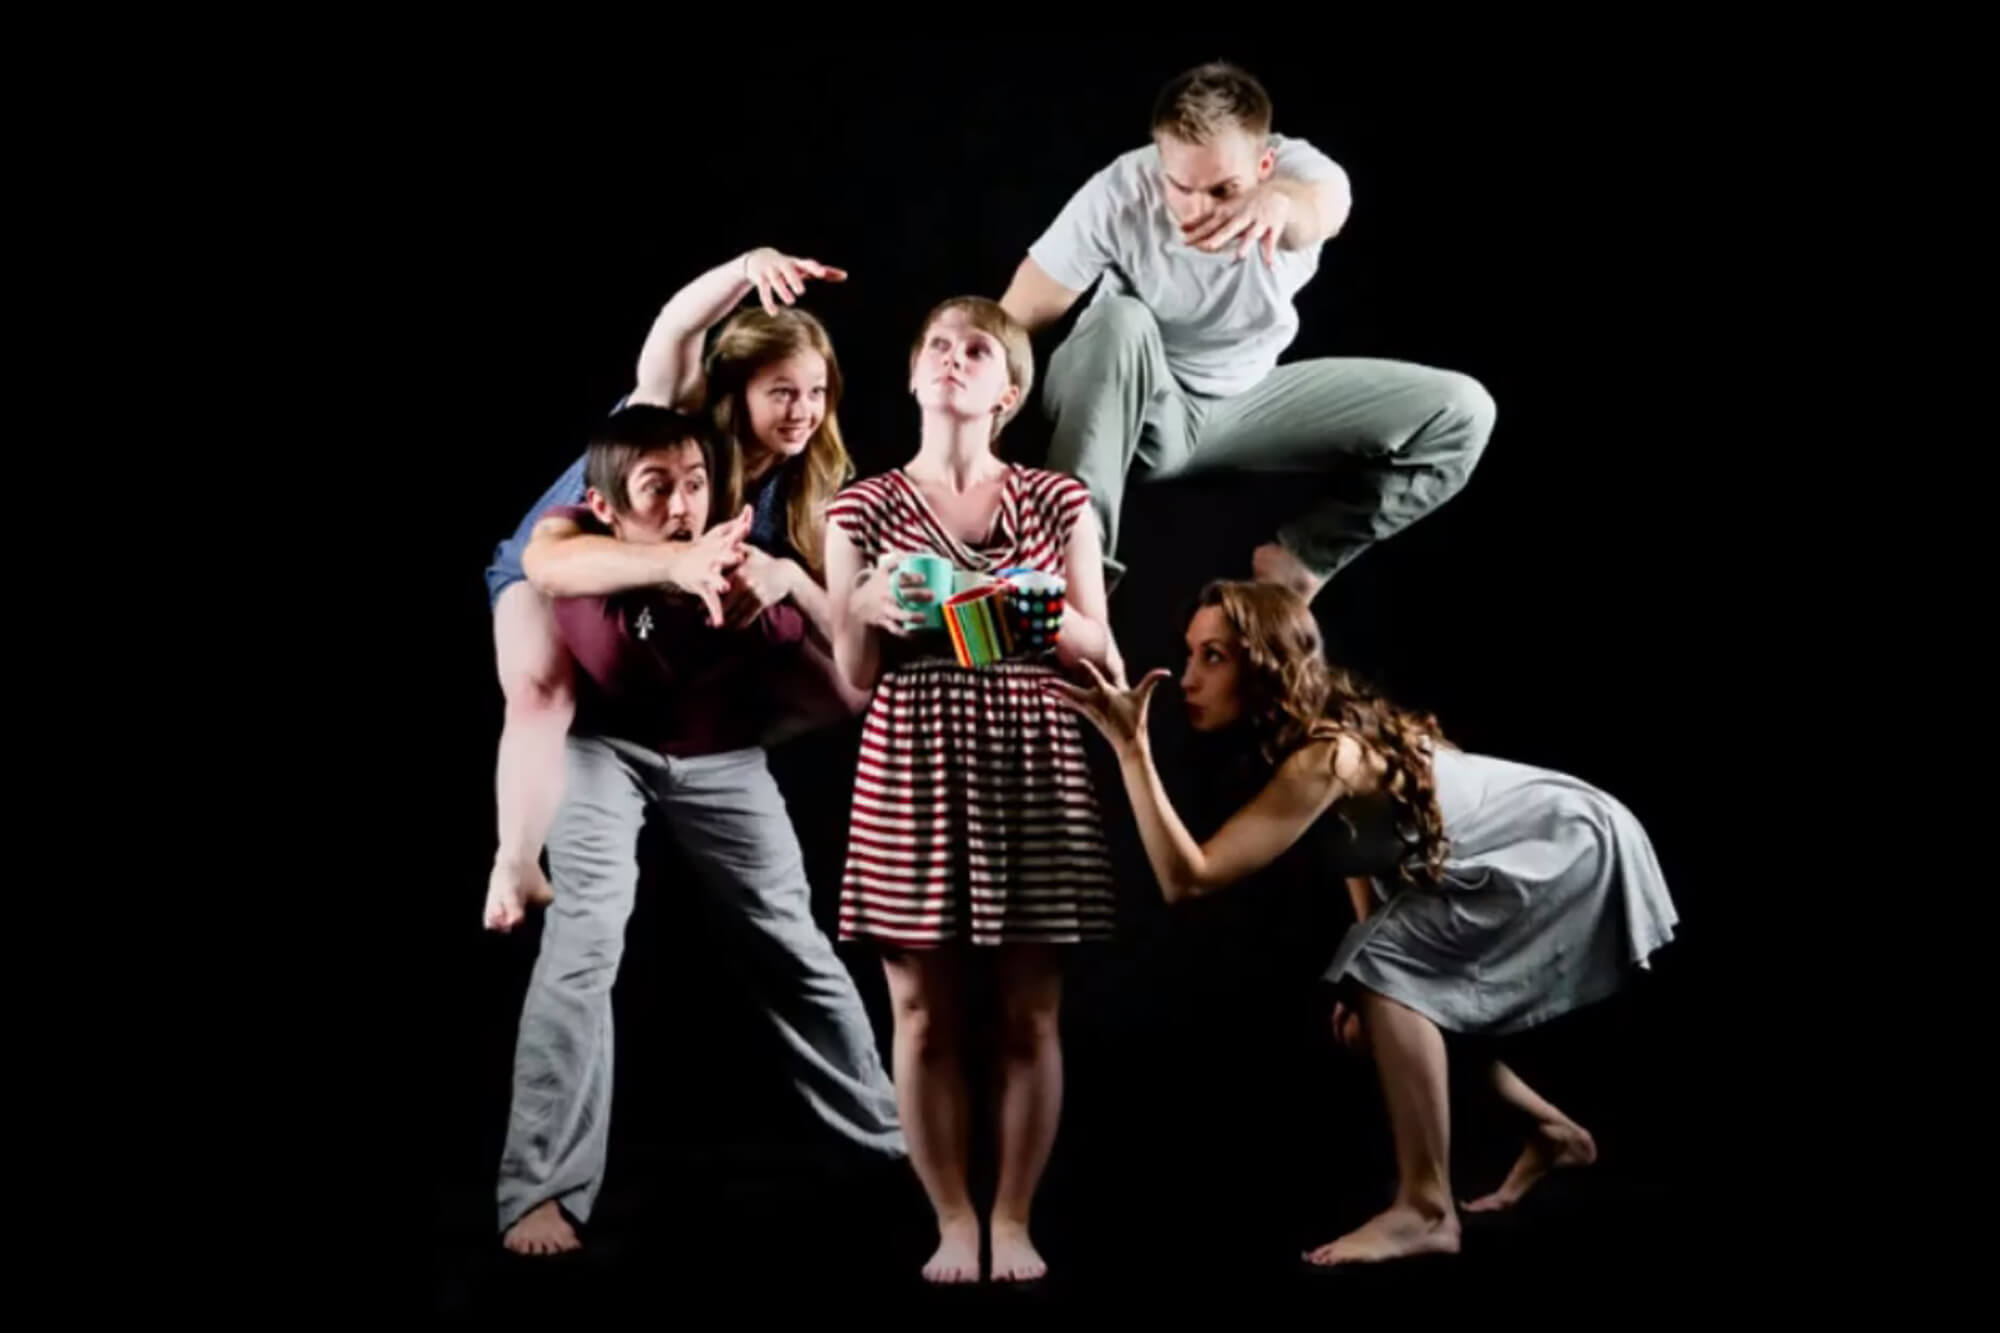 Four people dance expectantly around a woman who is holding five mugs